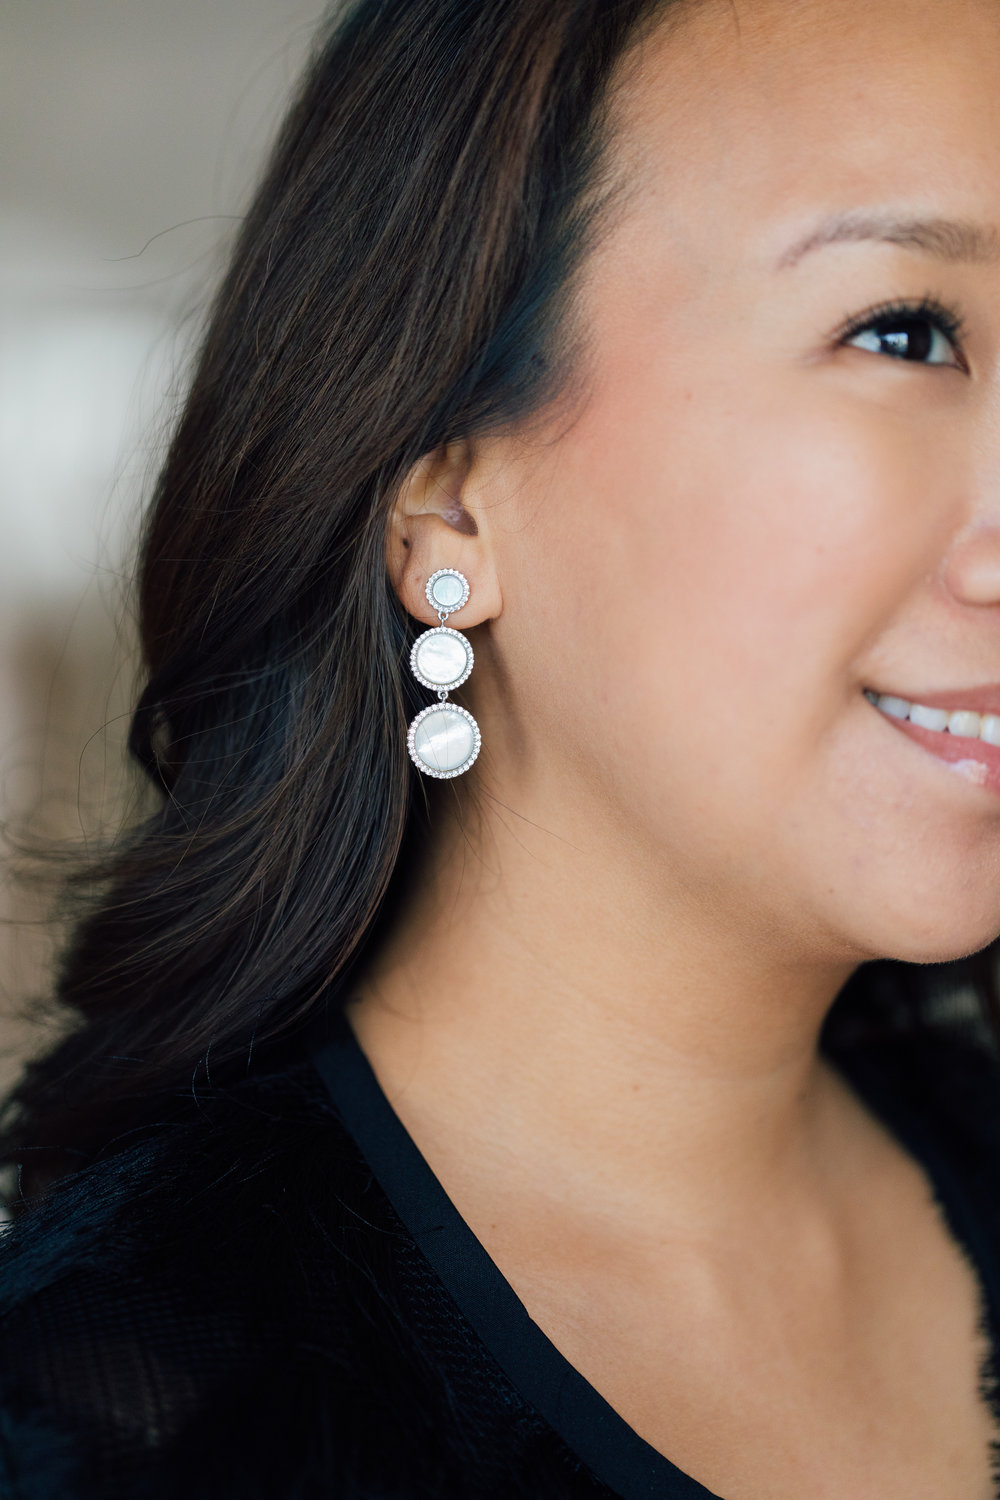 ... and Nyla Star's 3-tiered Mother-of-Pearl earrings are sure to complement any outfit!